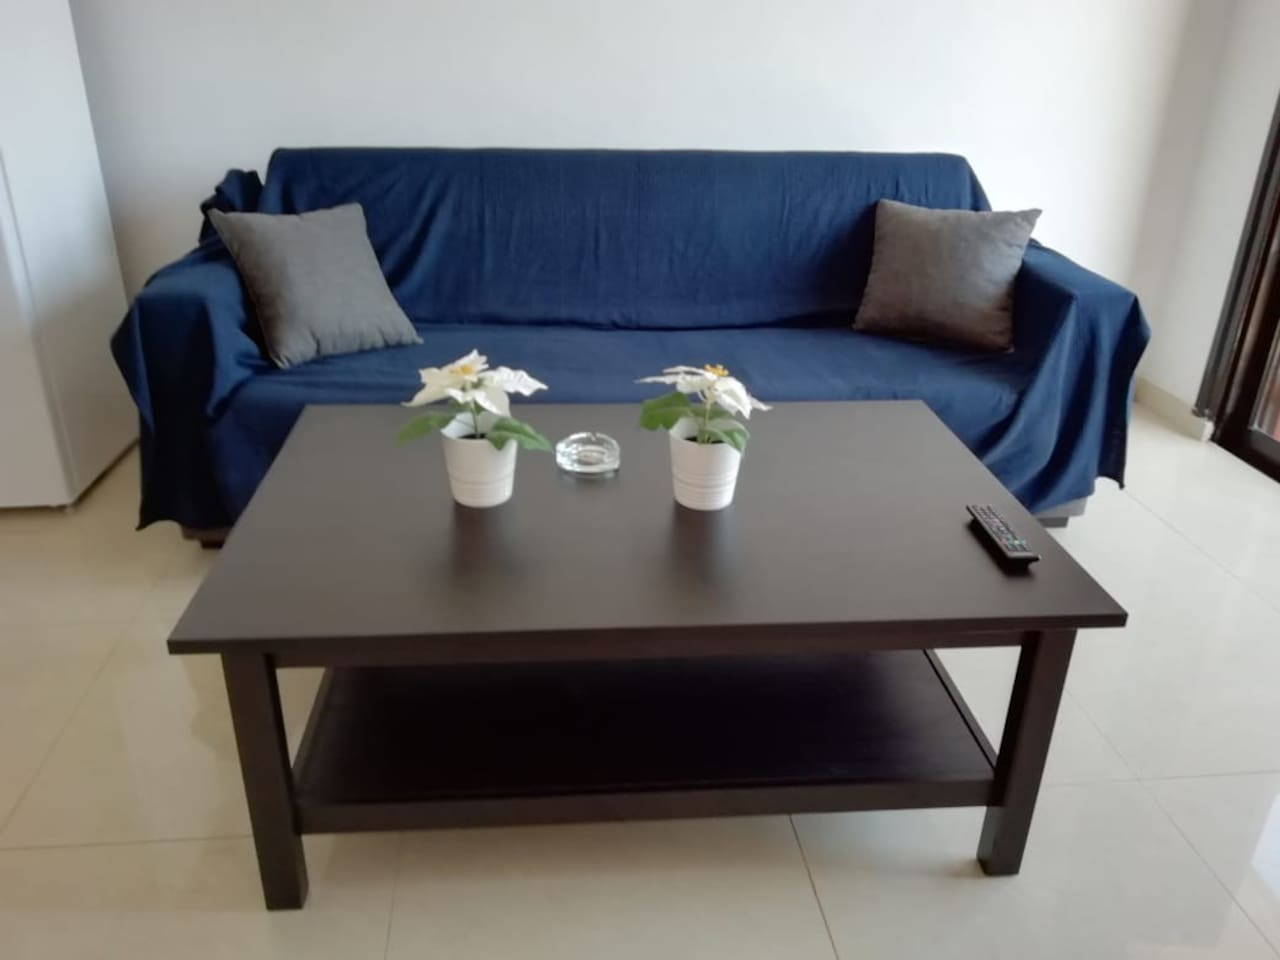 One bedroom apartment - Kato Paphos - Cyprus